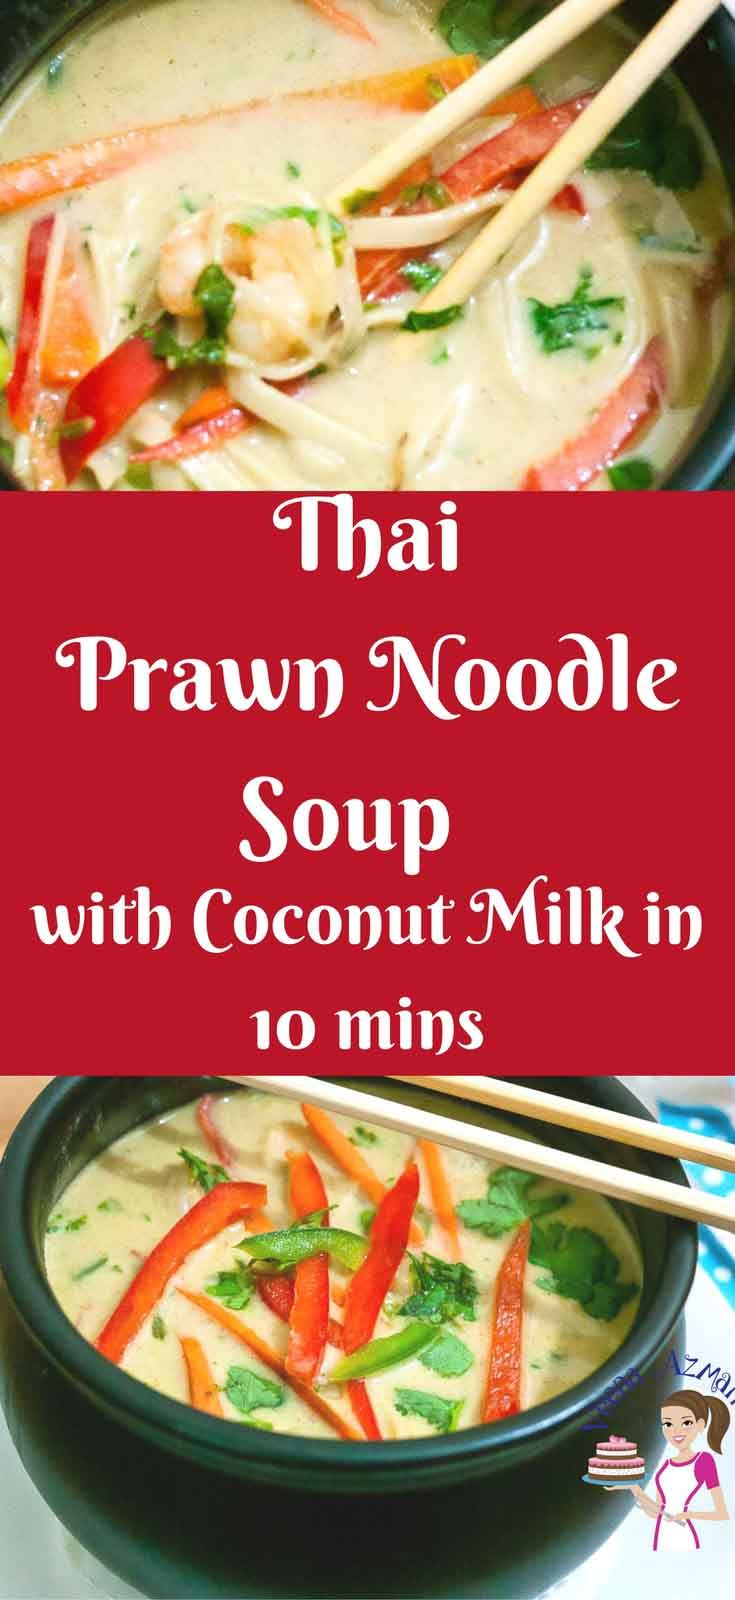 Prawn Noodle Soup recipe uses frozen prawns, Thai curry paste, canned coconut milk and a few ingredients you can find at home to make this comforting soup. #prawn #soup #comfort #Thai #coconut #soups #recipe #cooking #ThaiPrawnSoup #asiansoup